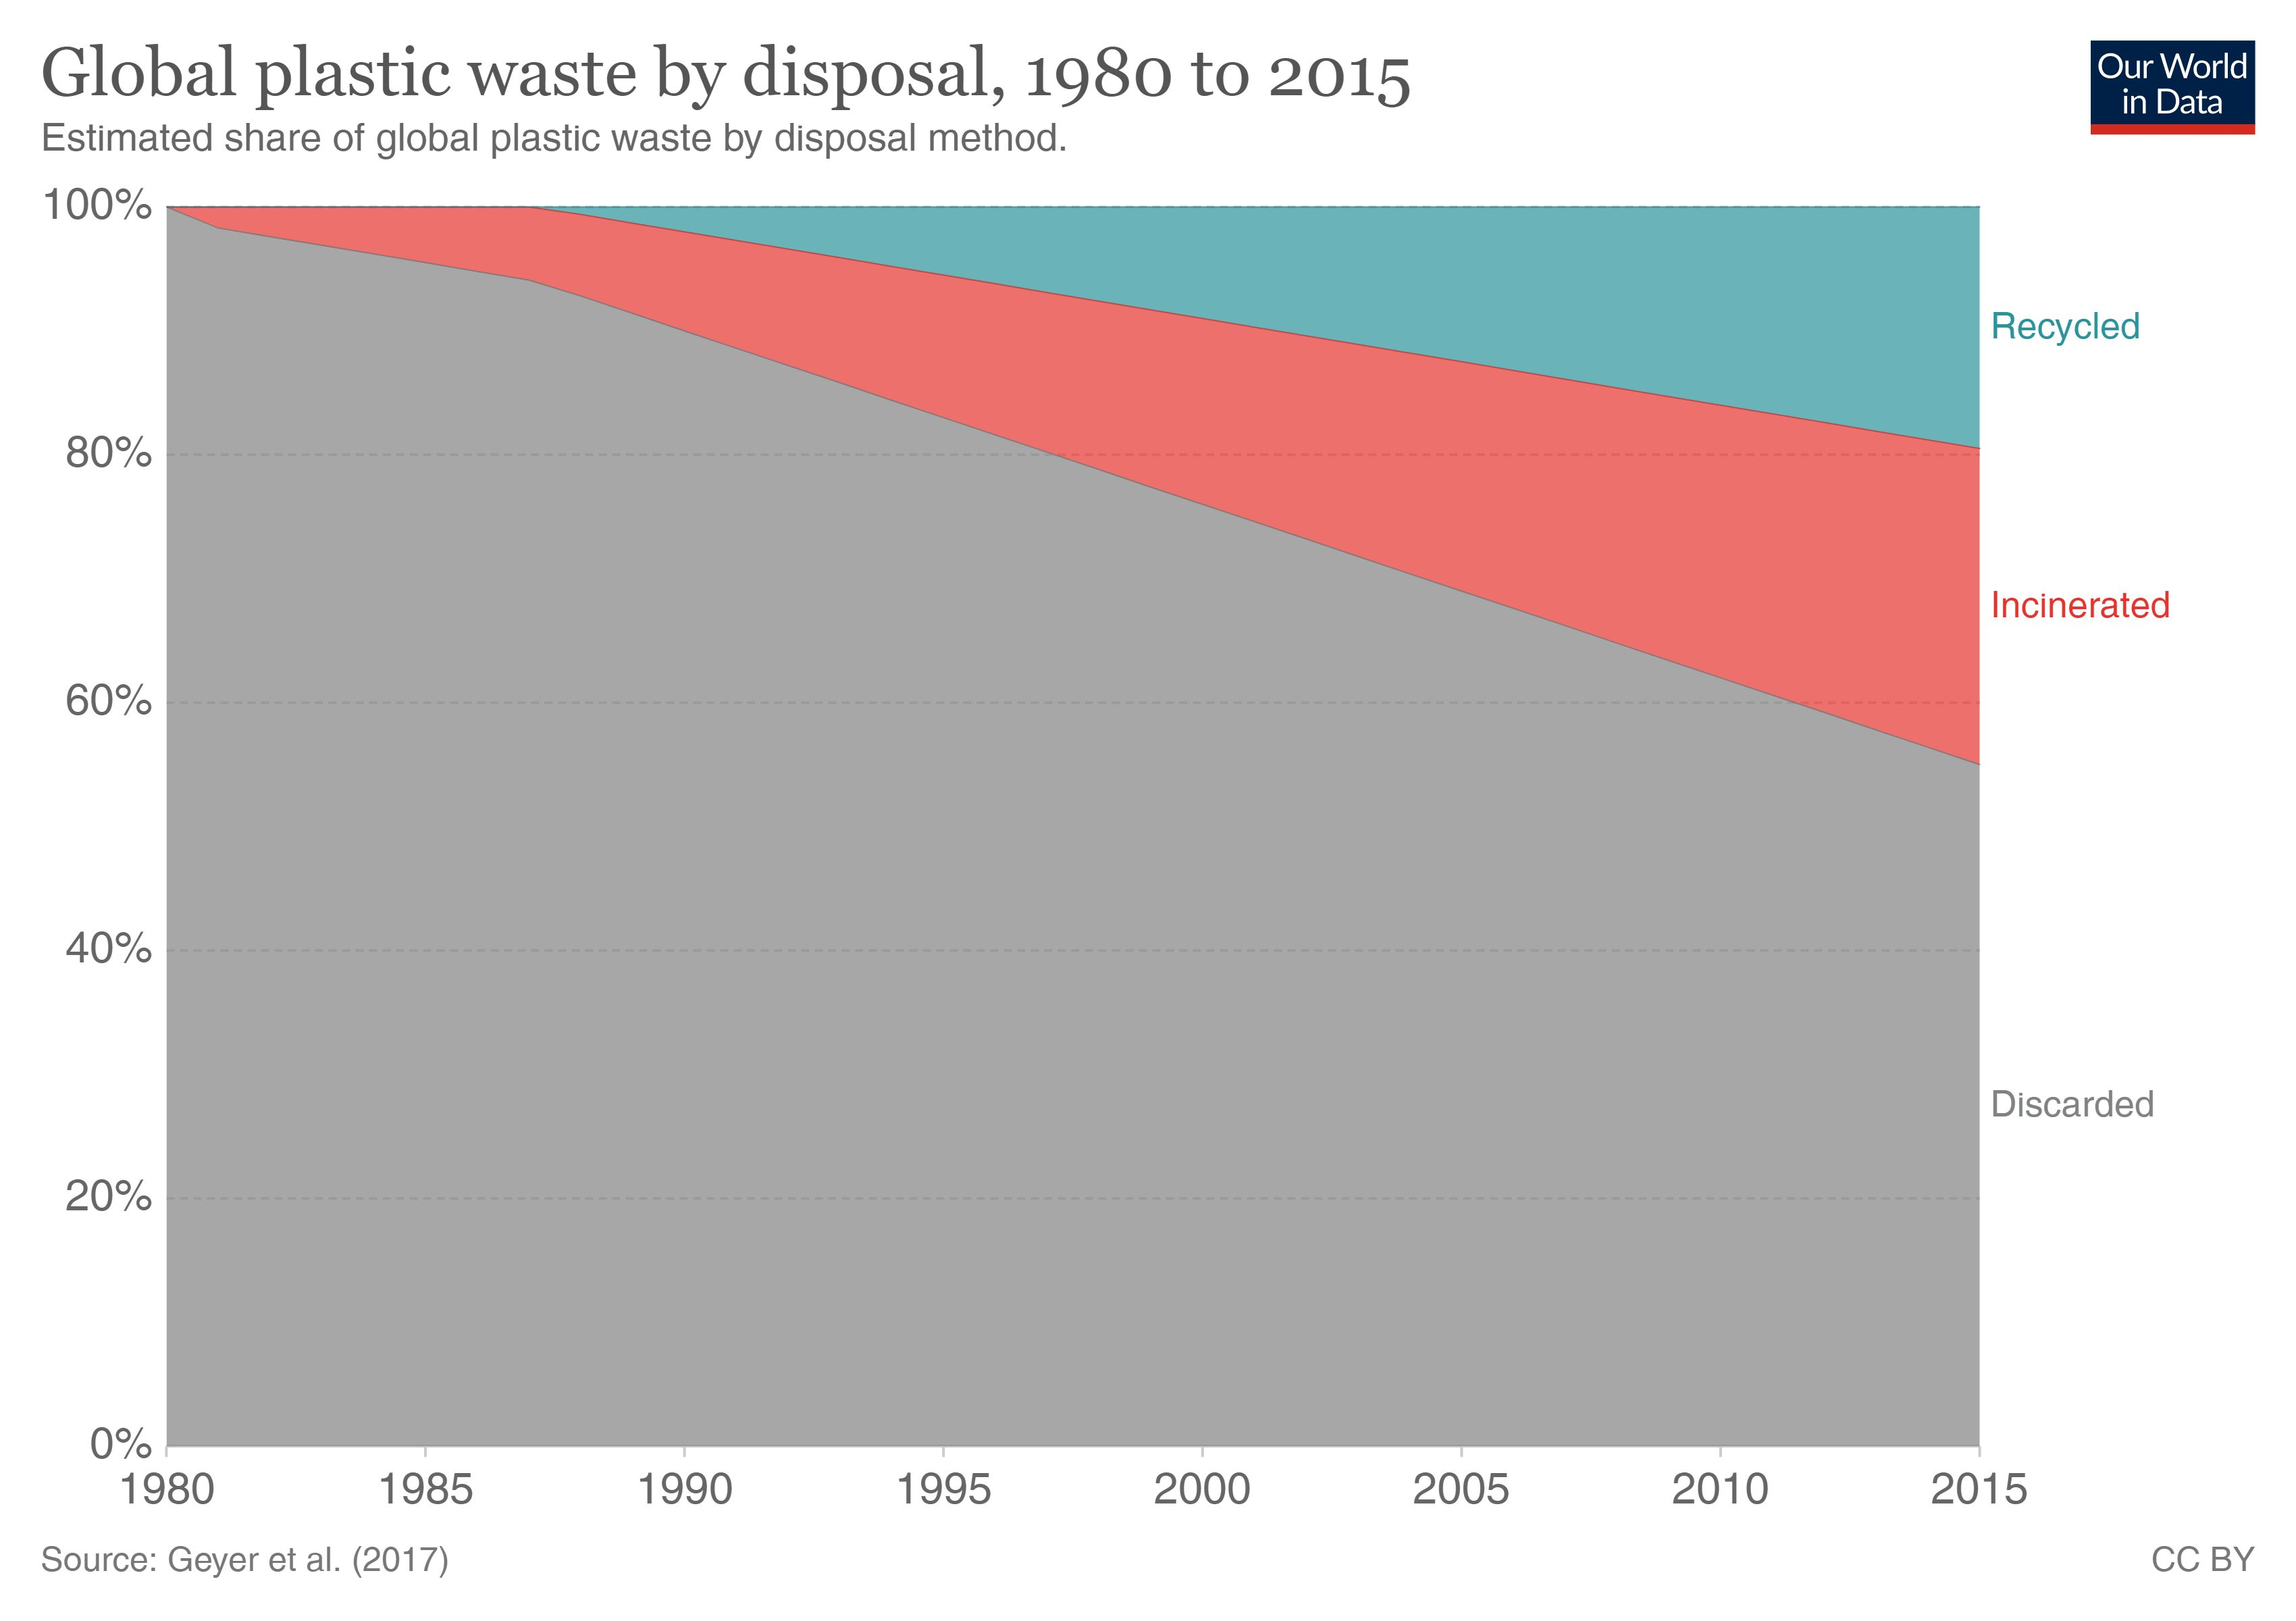 How much of plastic is recycled